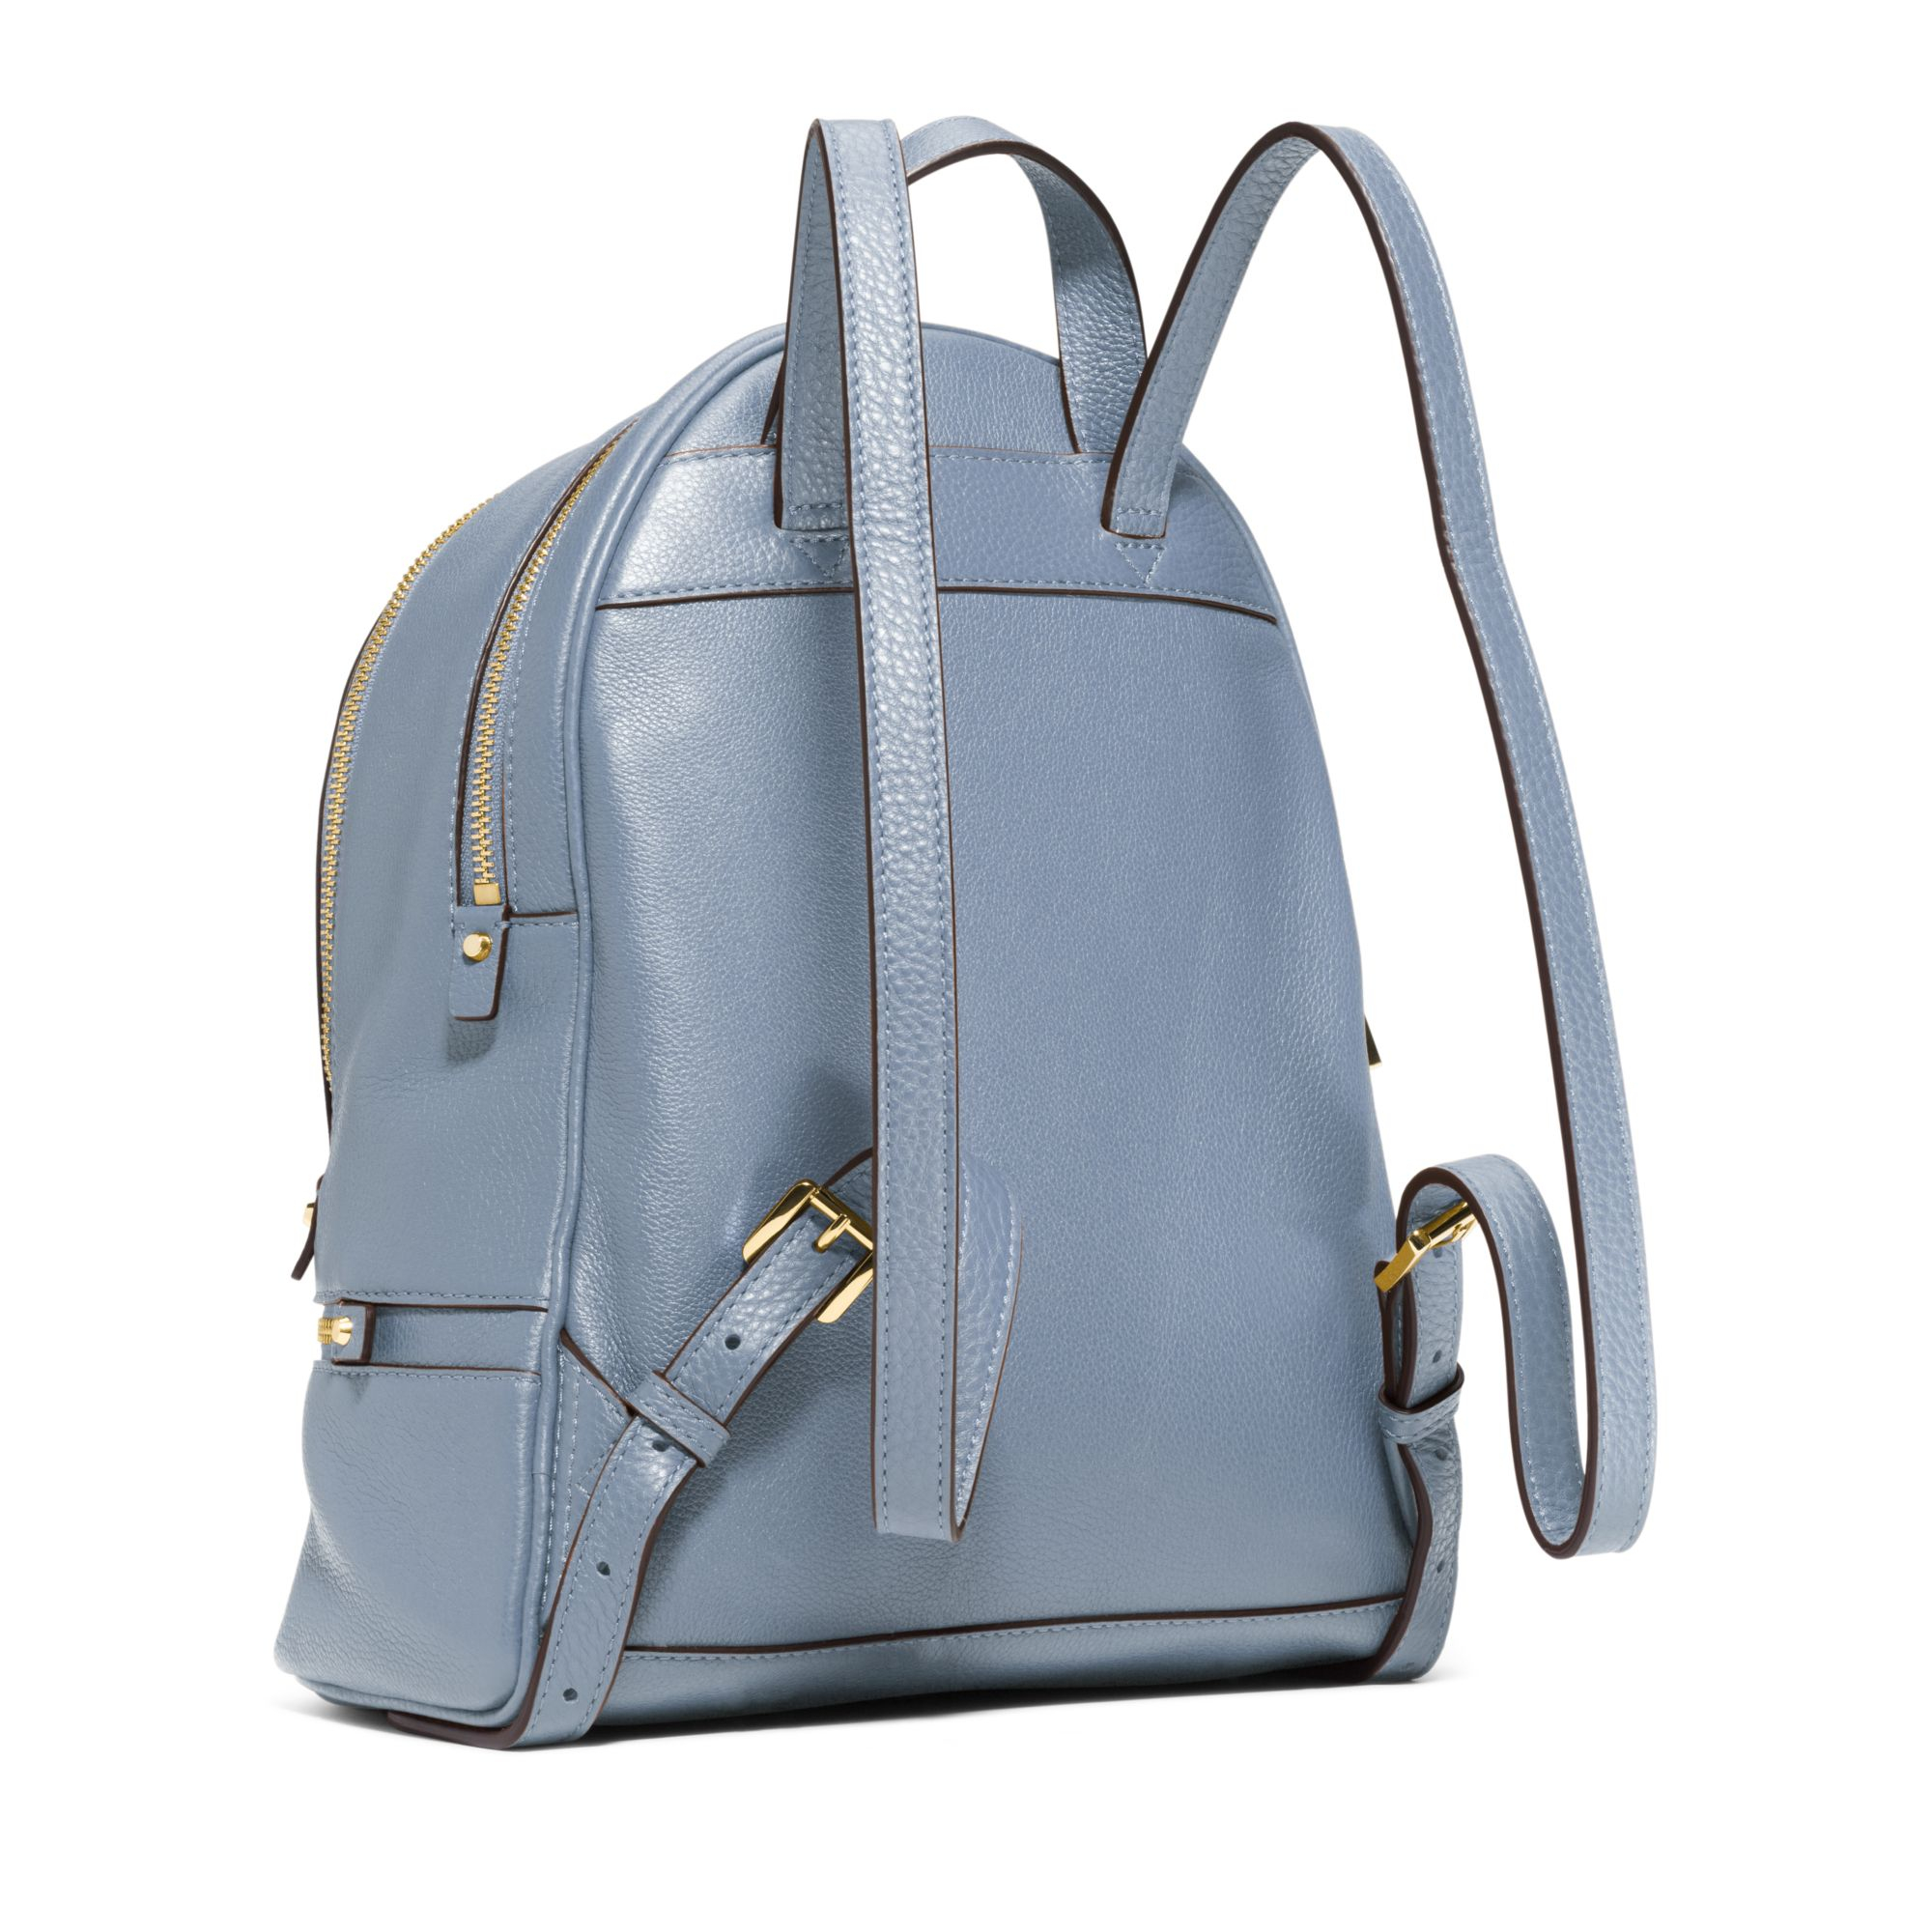 Michael kors Rhea Small Leather Backpack in Blue | Lyst